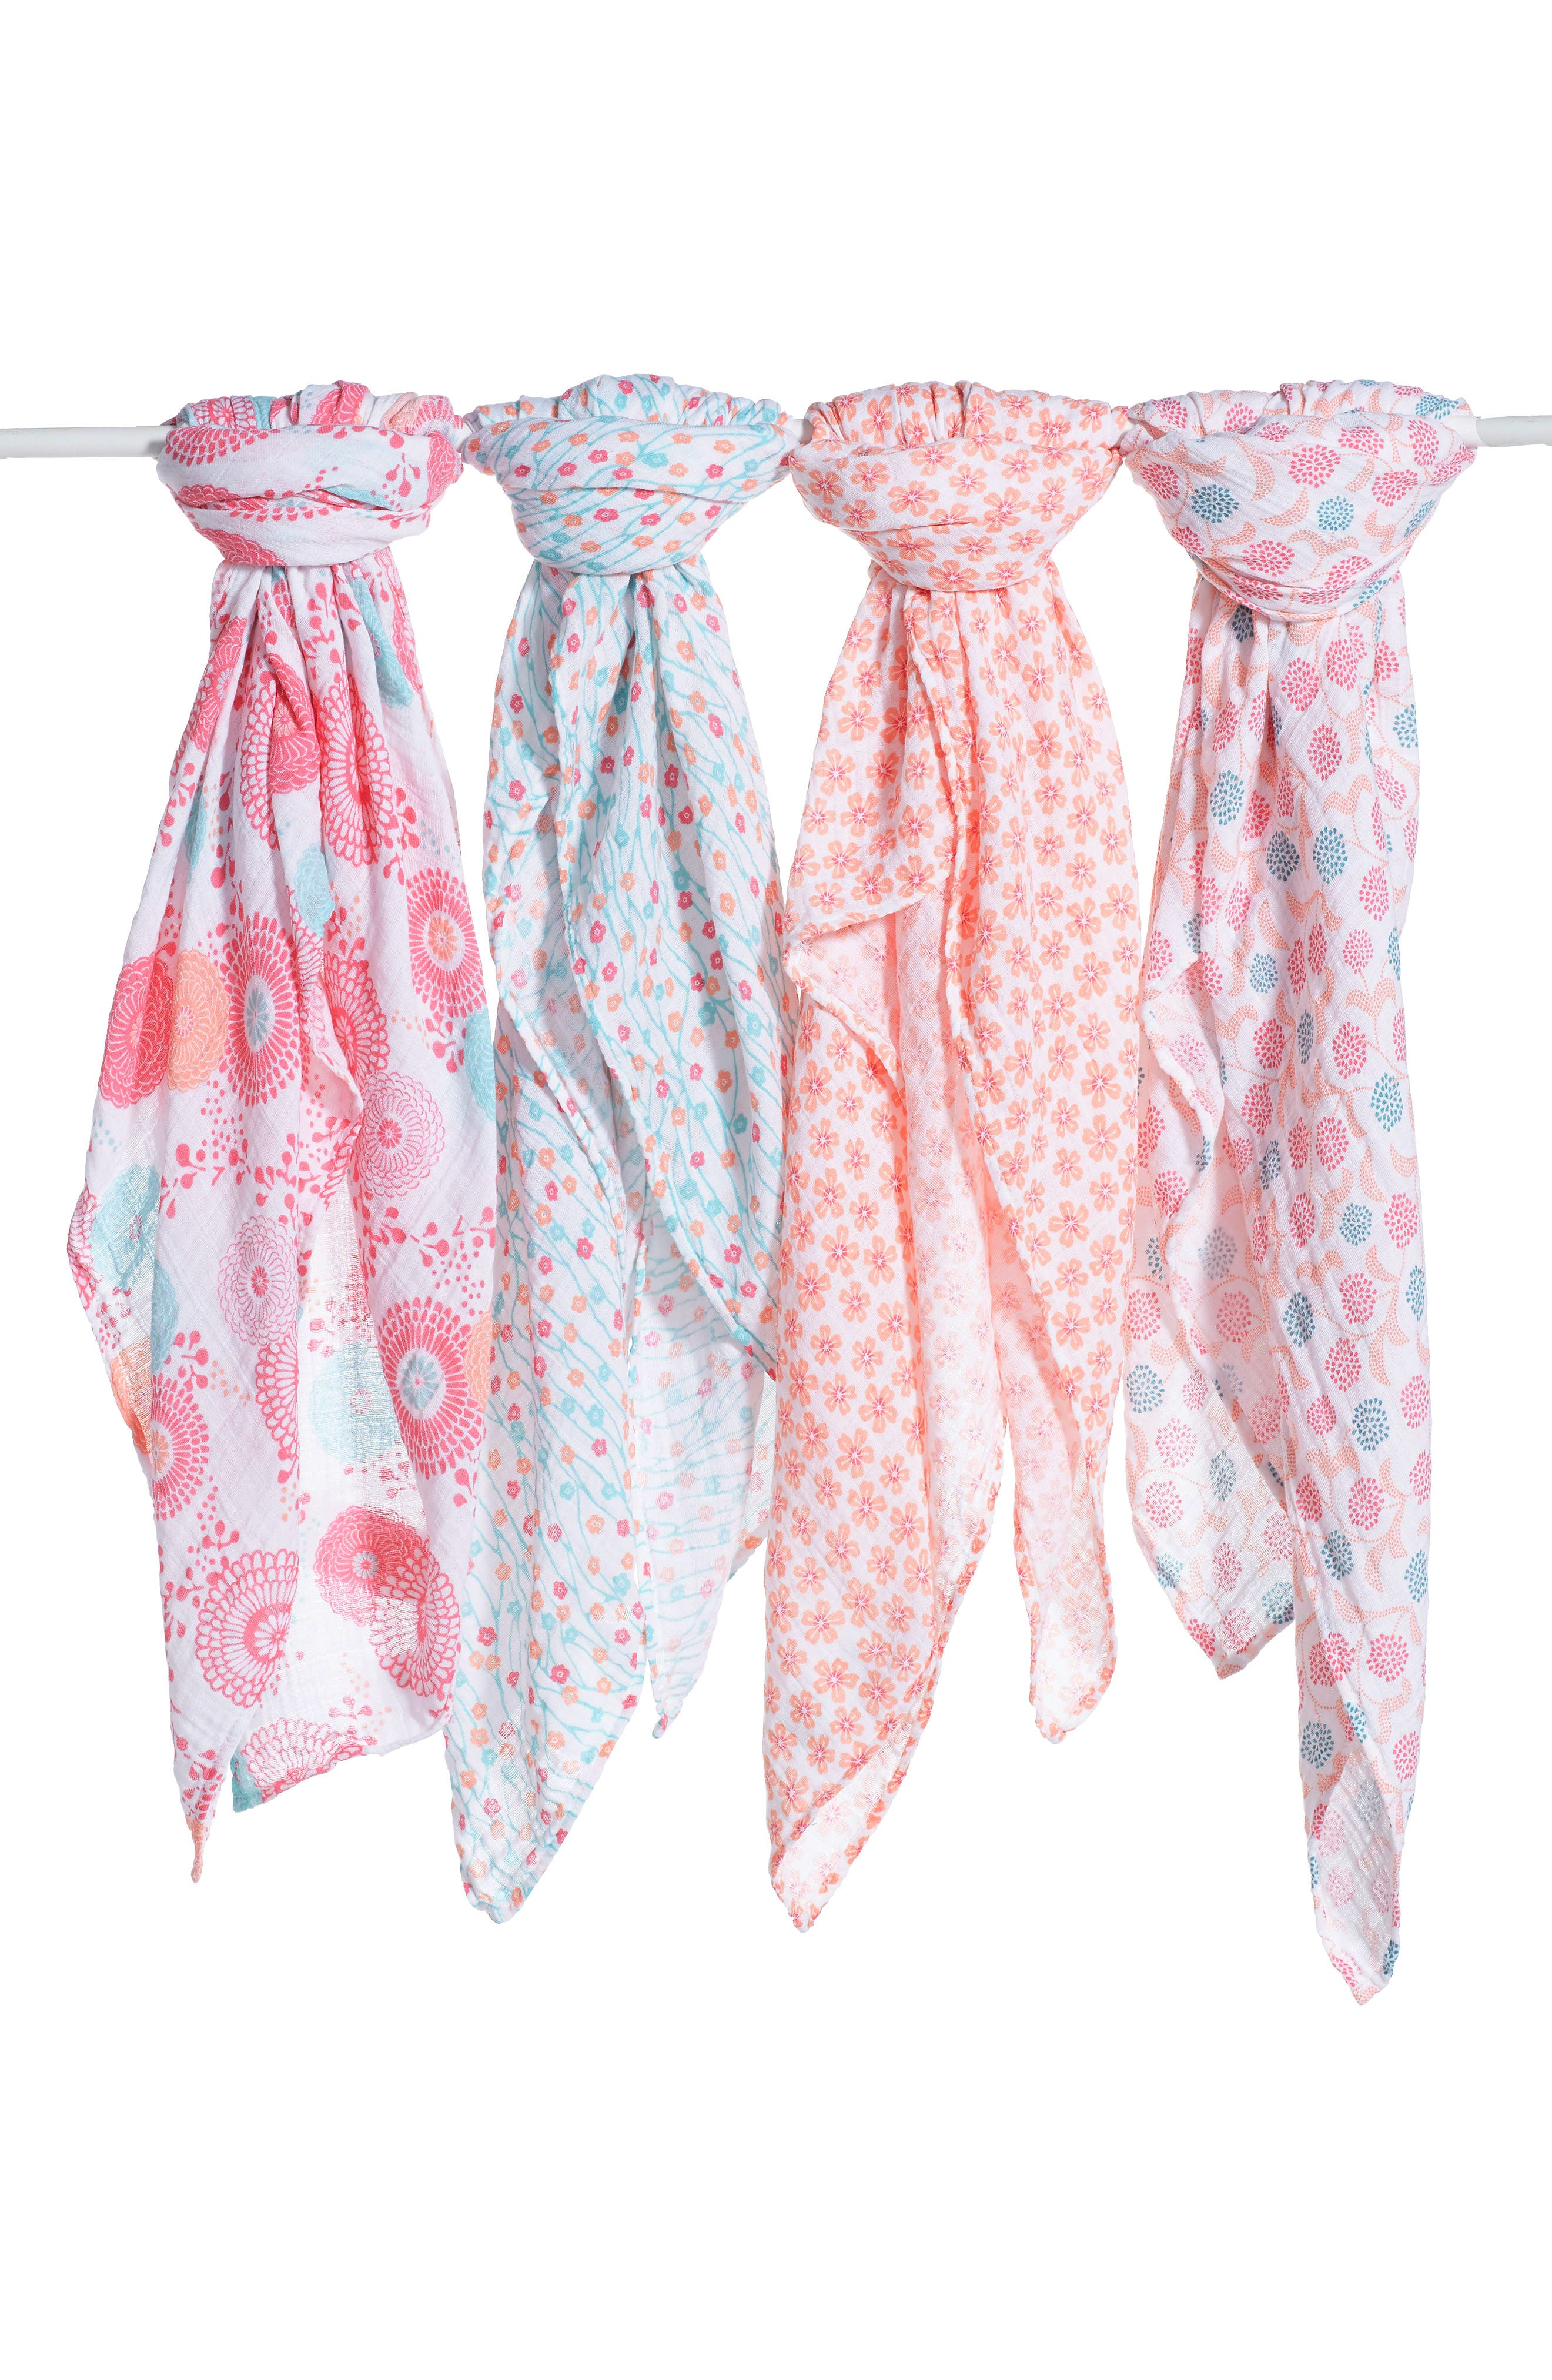 x Tea Collection 4-Pack Swaddling Cloths,                             Main thumbnail 1, color,                             GLOBAL GARDEN